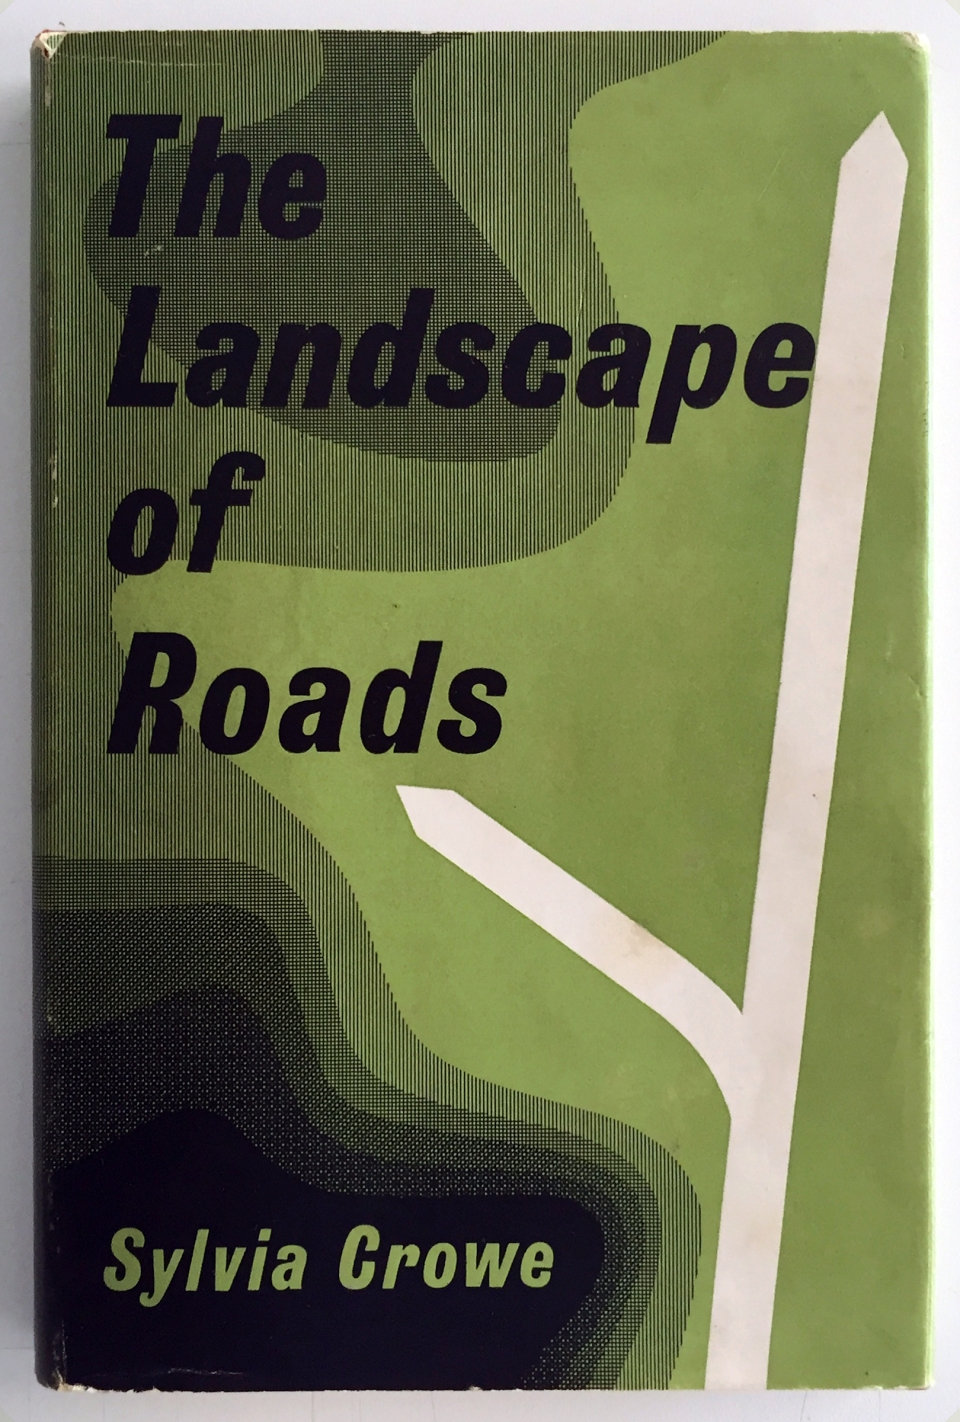 Landscape of Roads